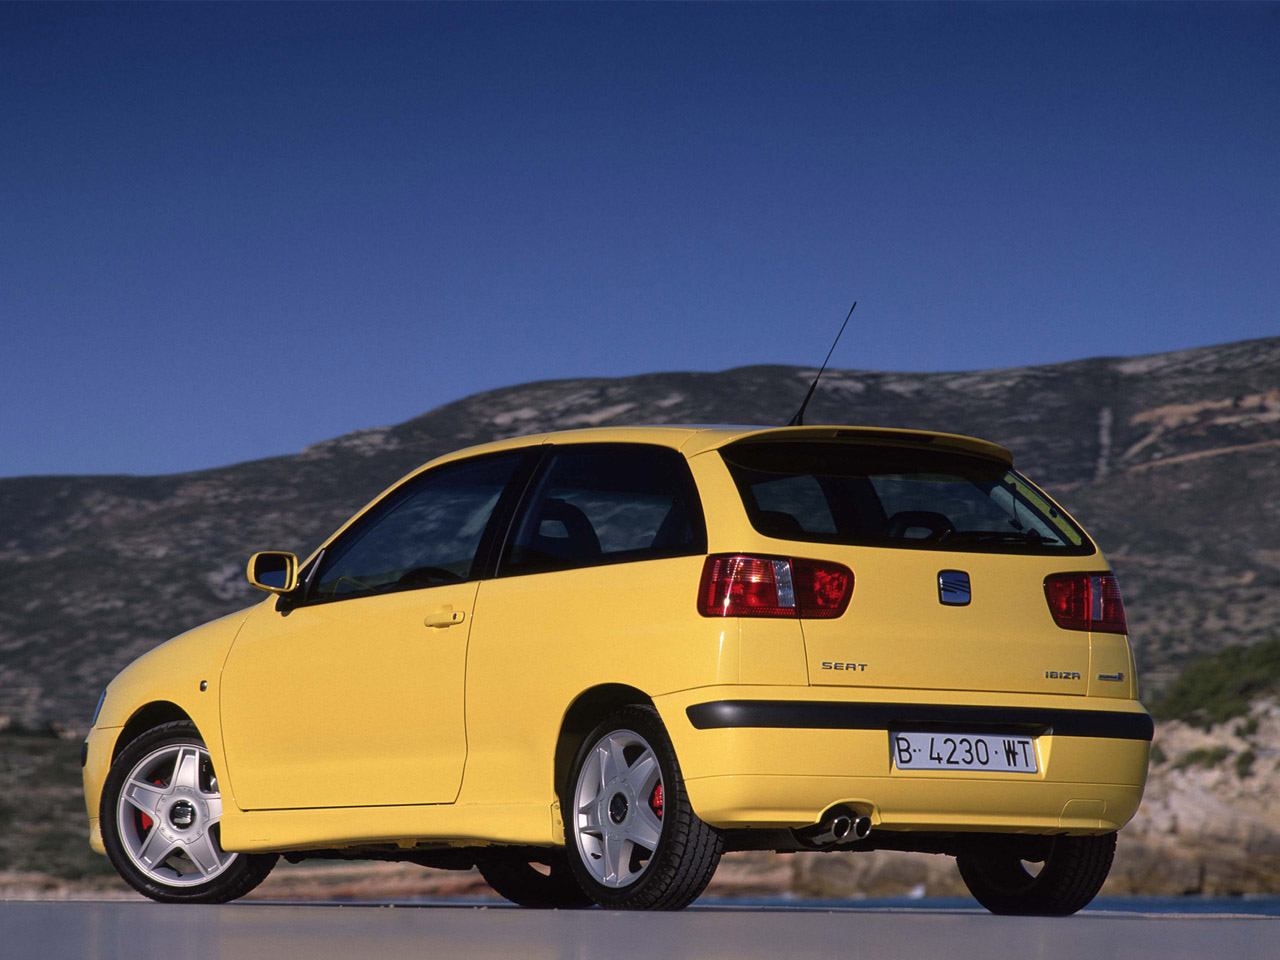 seat ibiza cupra 1999 2002 seat ibiza cupra 1999 2002 photo 01 car in pictures car photo gallery. Black Bedroom Furniture Sets. Home Design Ideas